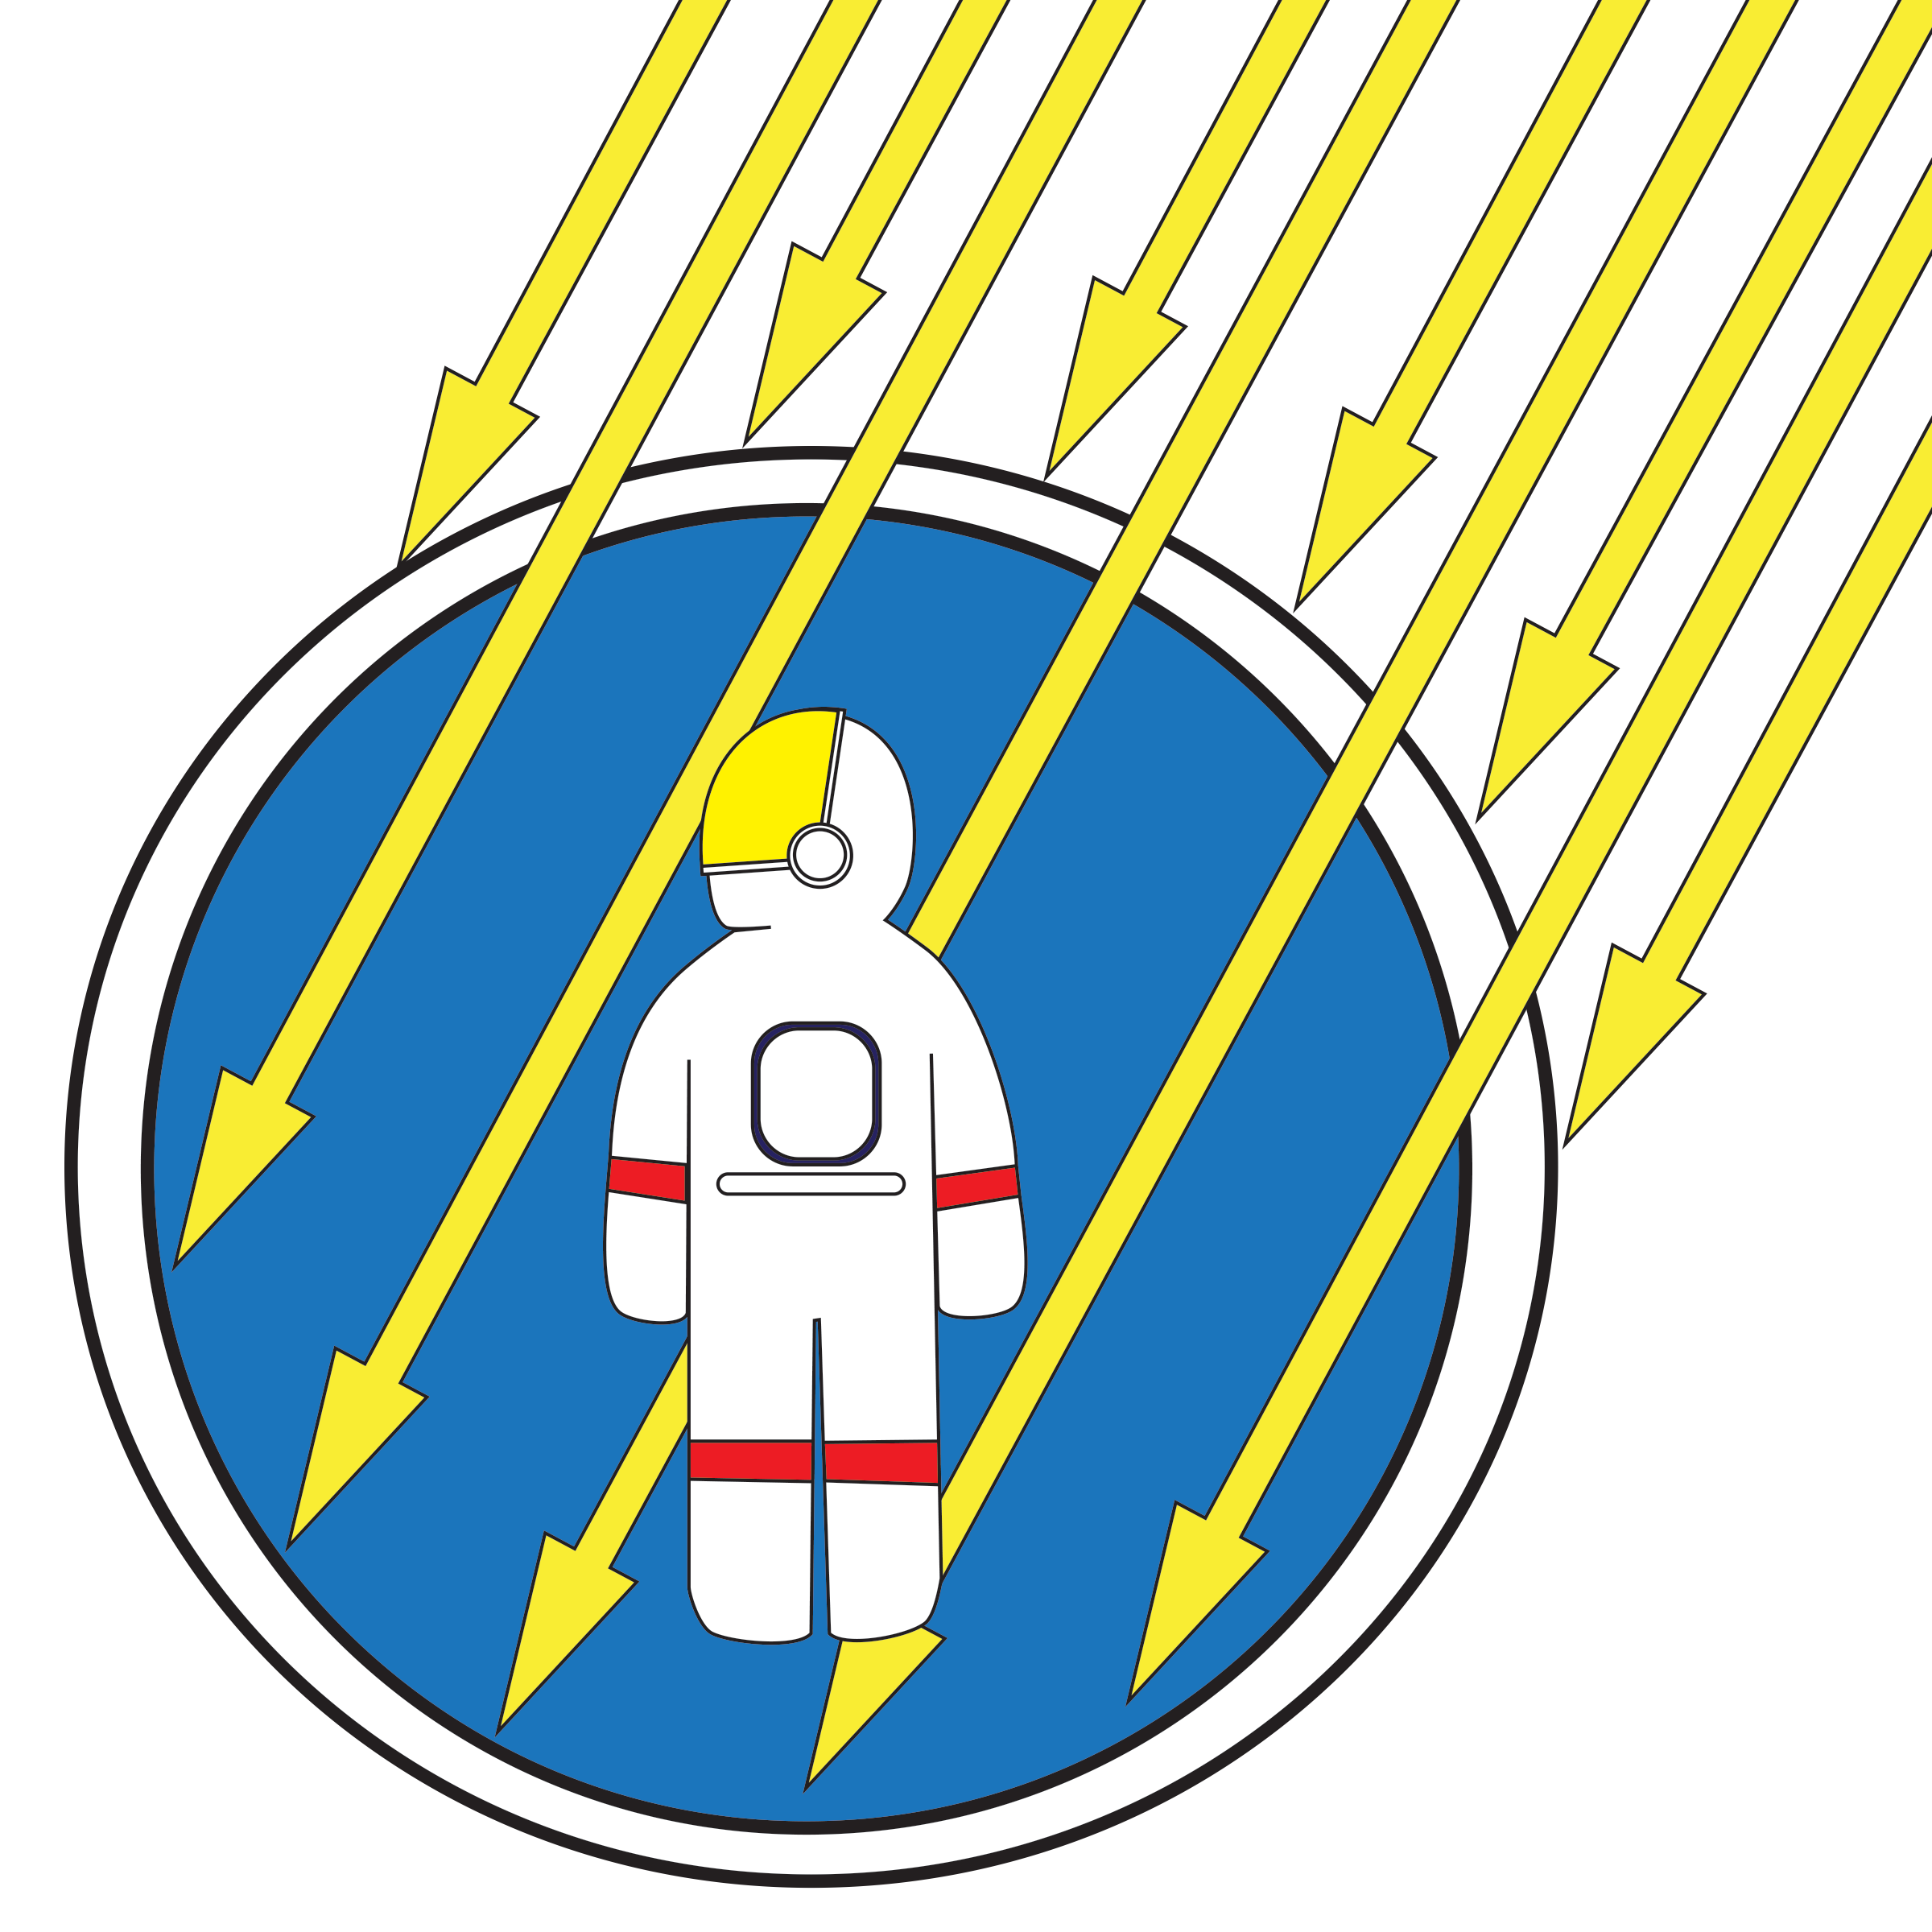 Galaxy clipart space mission. Radiation risks nasa hrp